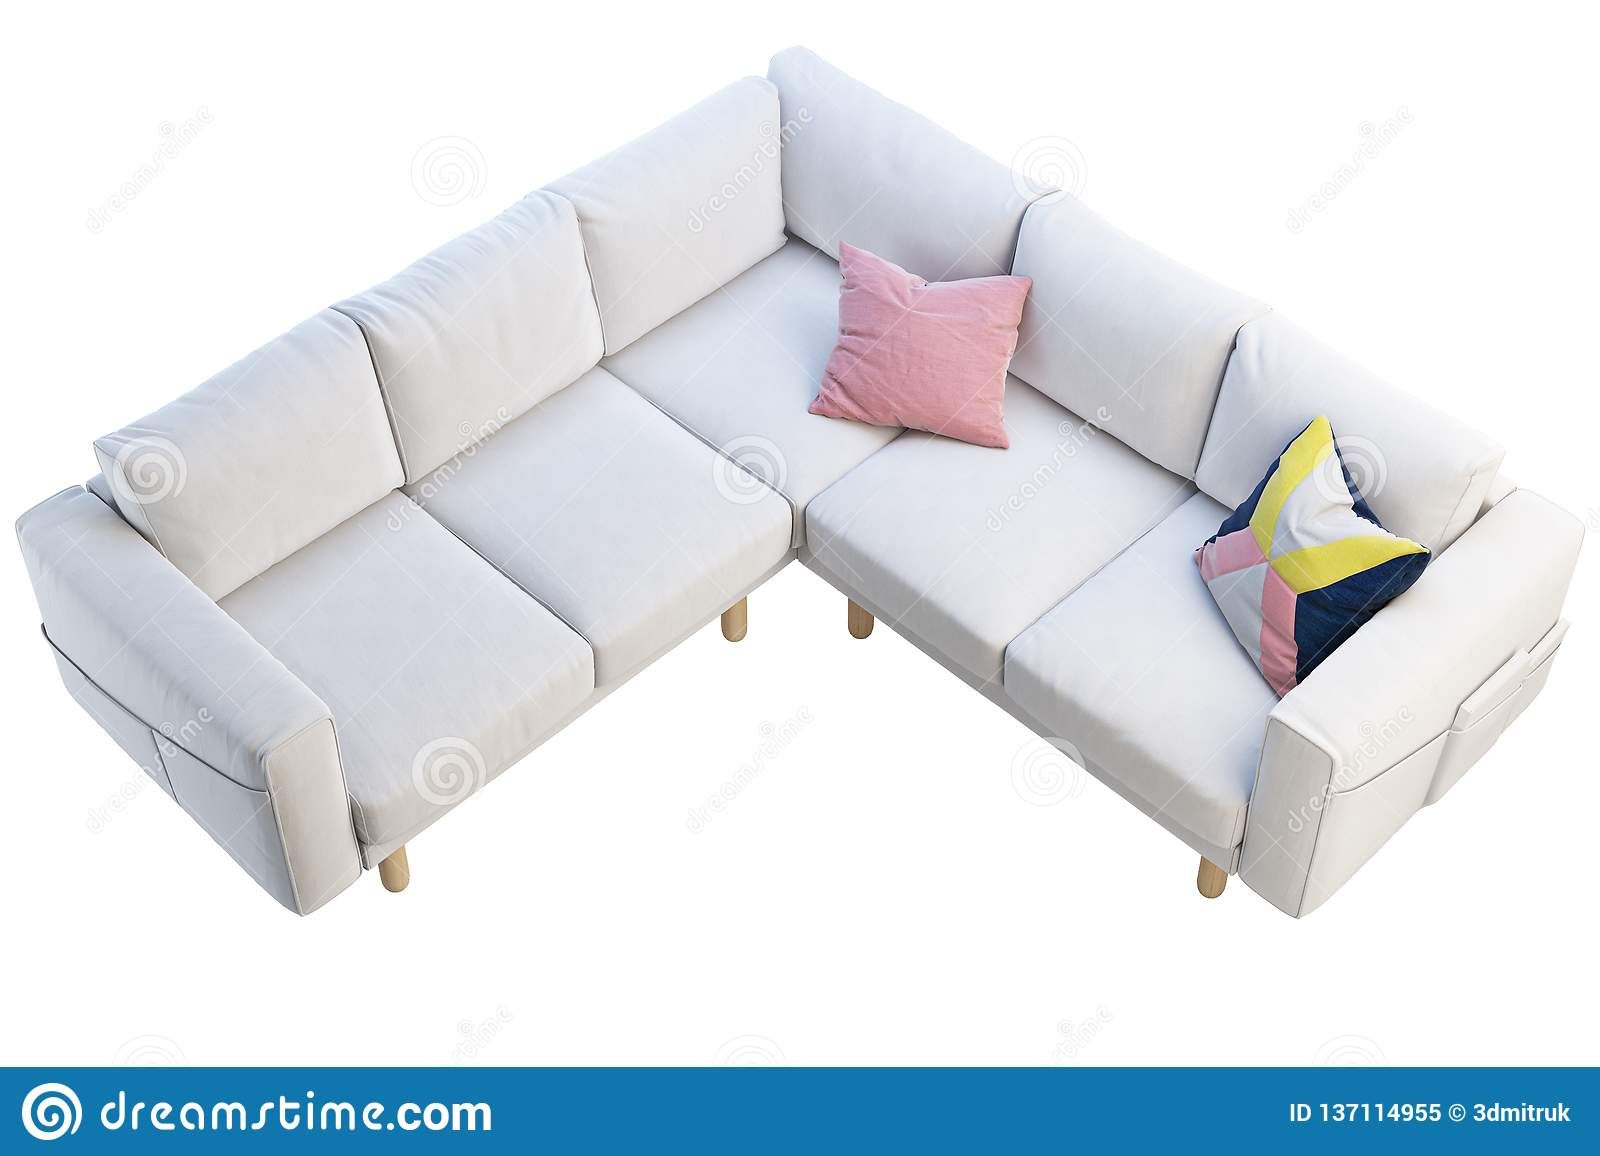 Remarkable Modern White Fabric Sofa With Colored Pillows 3D Render Machost Co Dining Chair Design Ideas Machostcouk